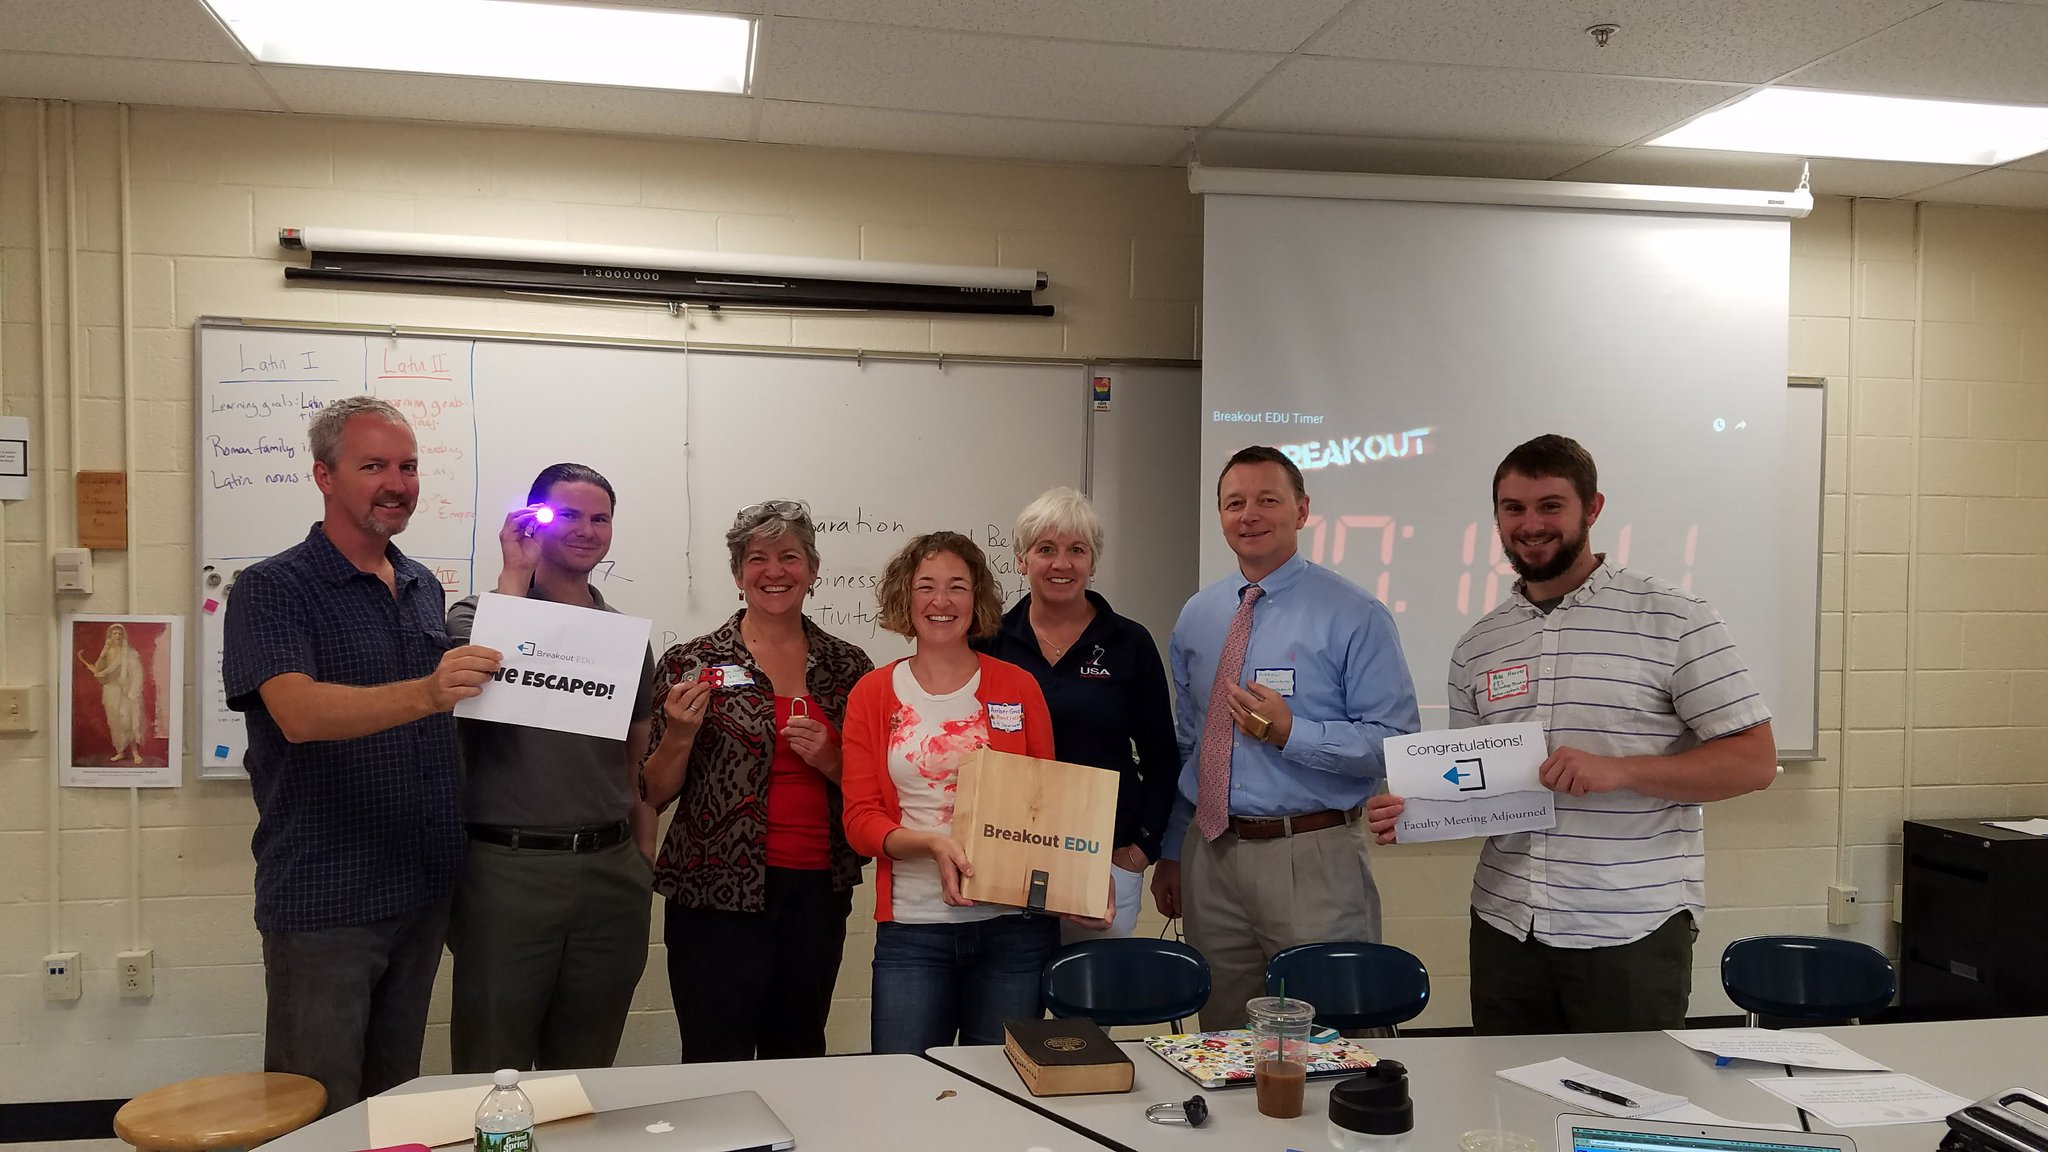 Teachers broke out of the faculty meeting with 15 minutes to spare! #yfinnovate #breakoutedu https://t.co/OLZCG1qLxj